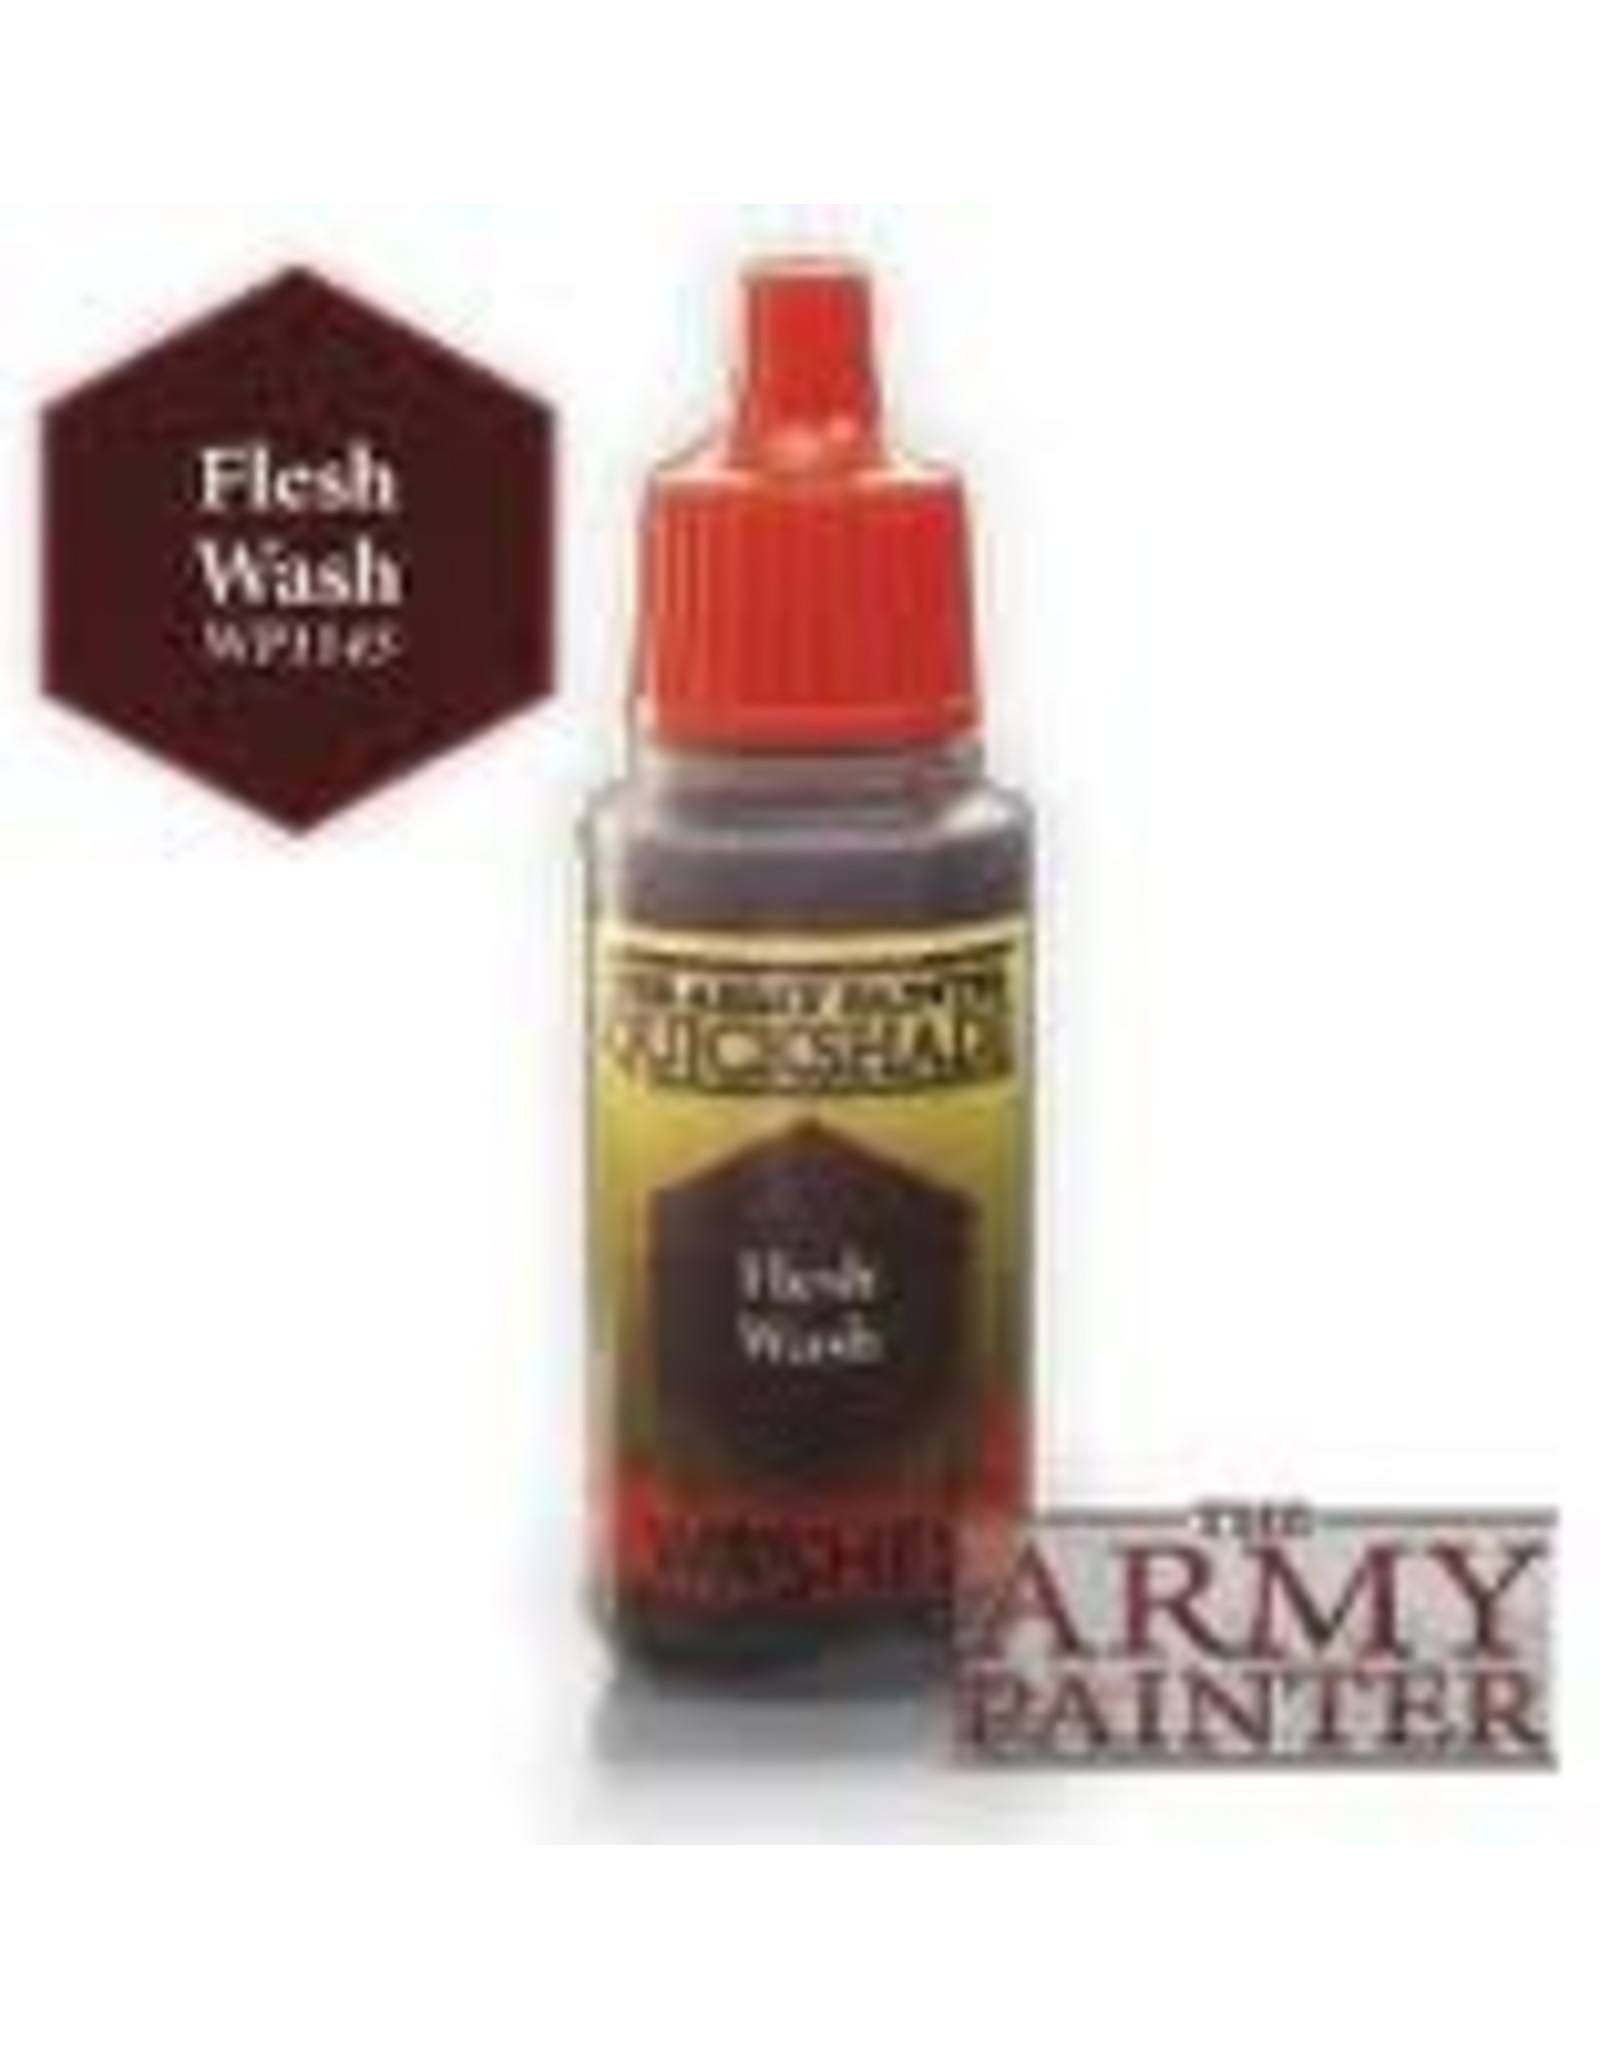 Army Painter Army Painter Washes: Flesh Wash